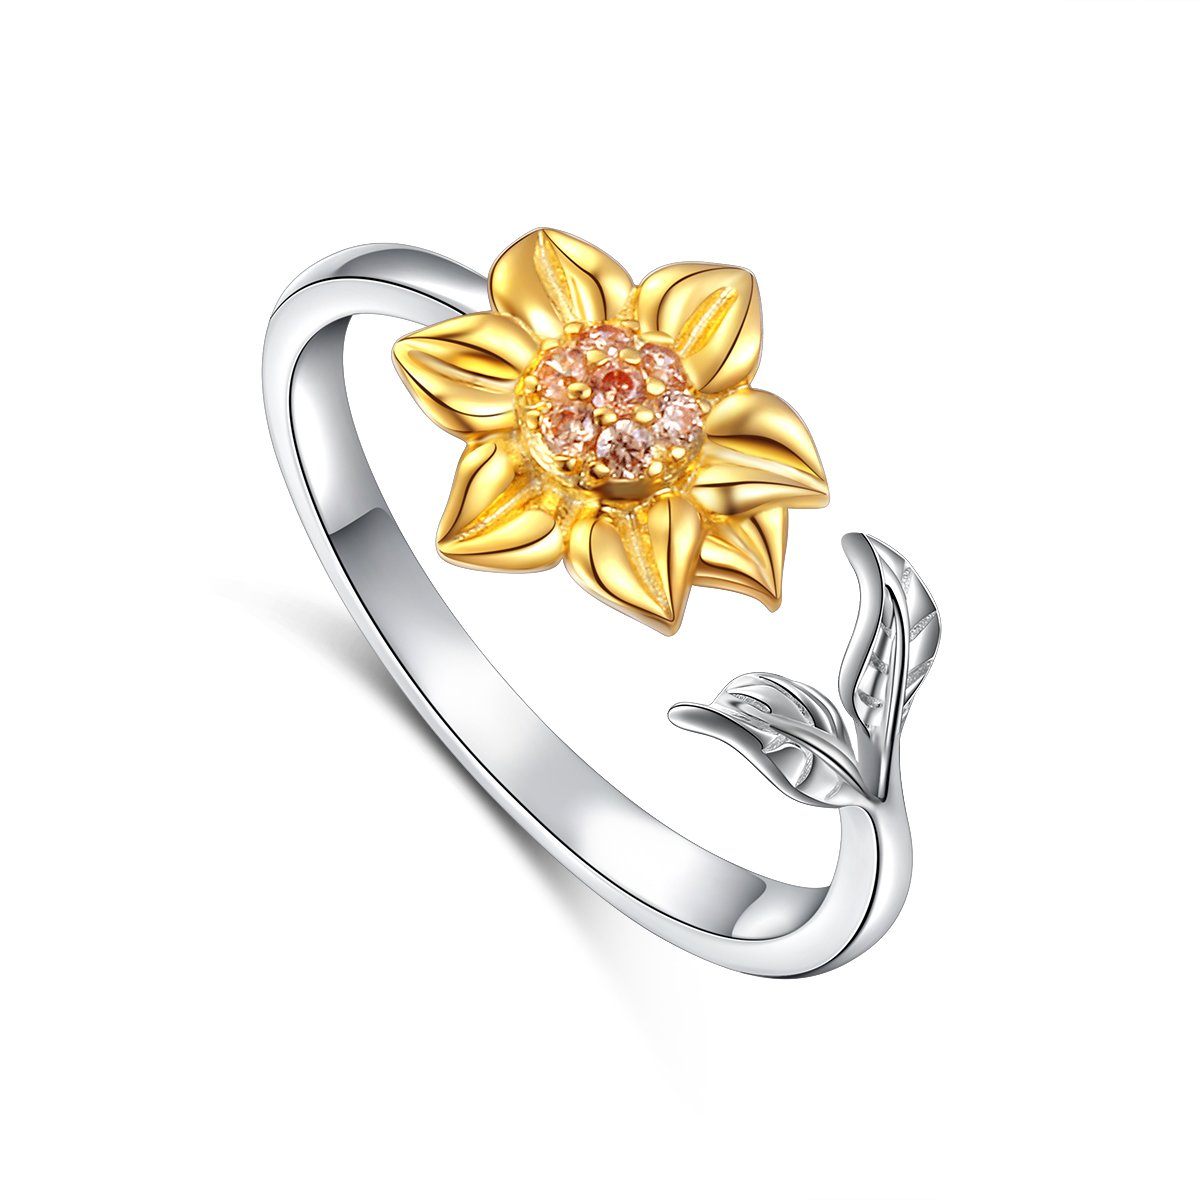 S925 Sterling Silver Sunflower with CZ Ring Adjustable Size 5 6 7 8 9